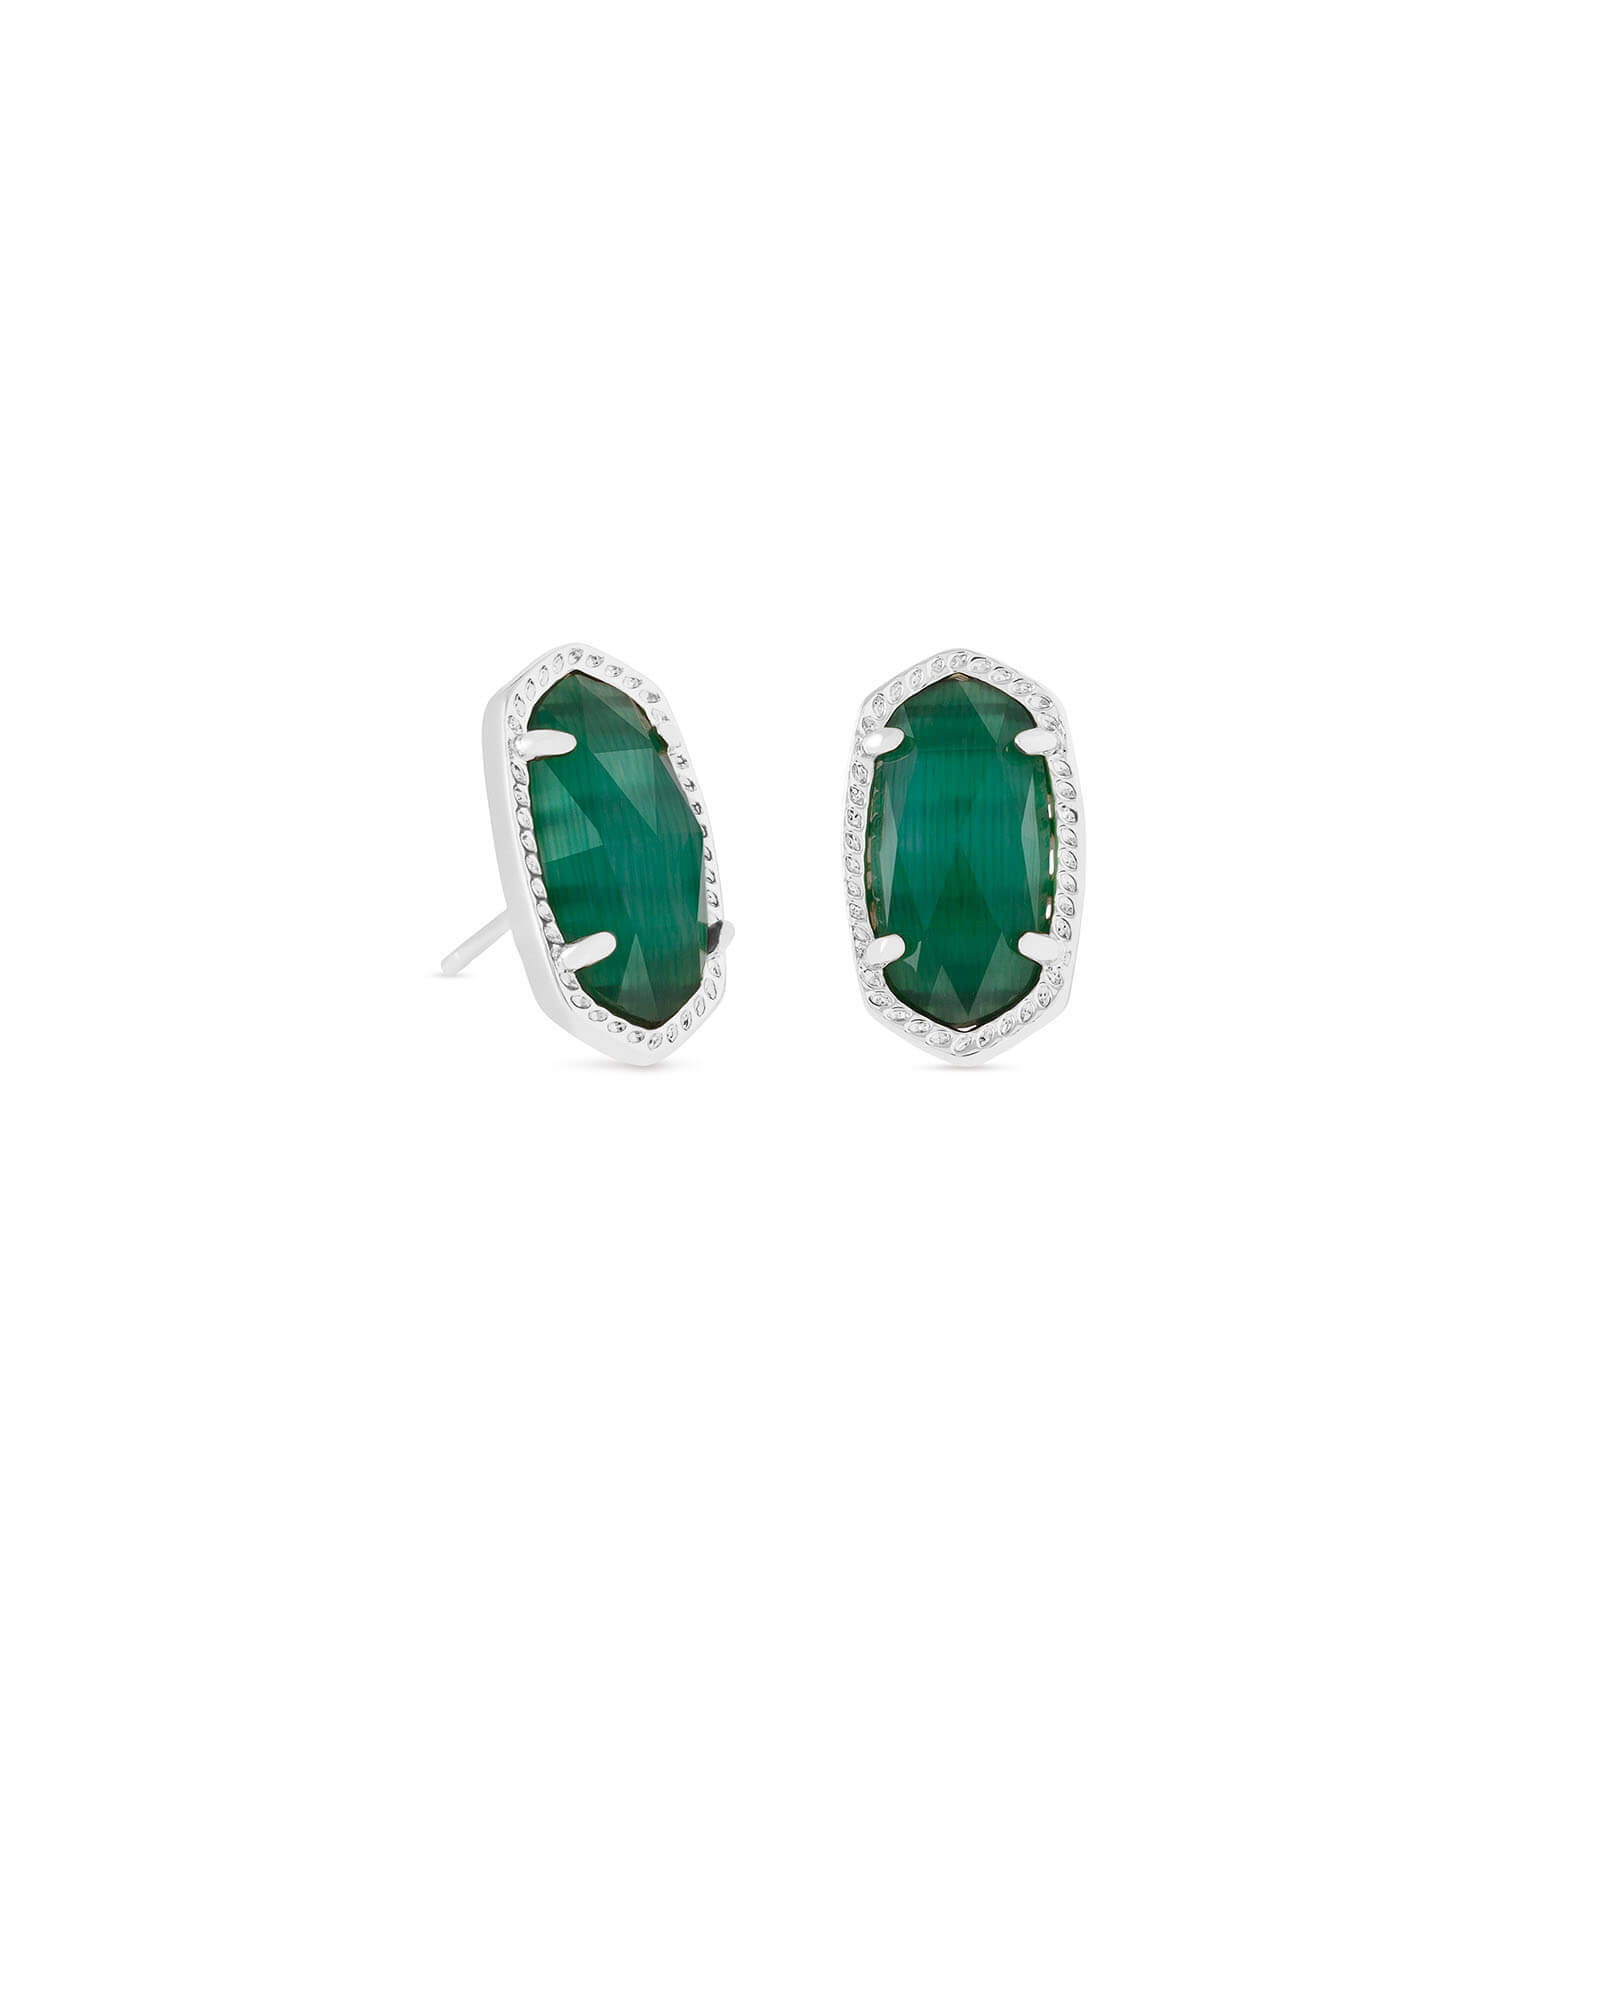 Ellie Silver Stud Earrings in Emerald Cats Eye